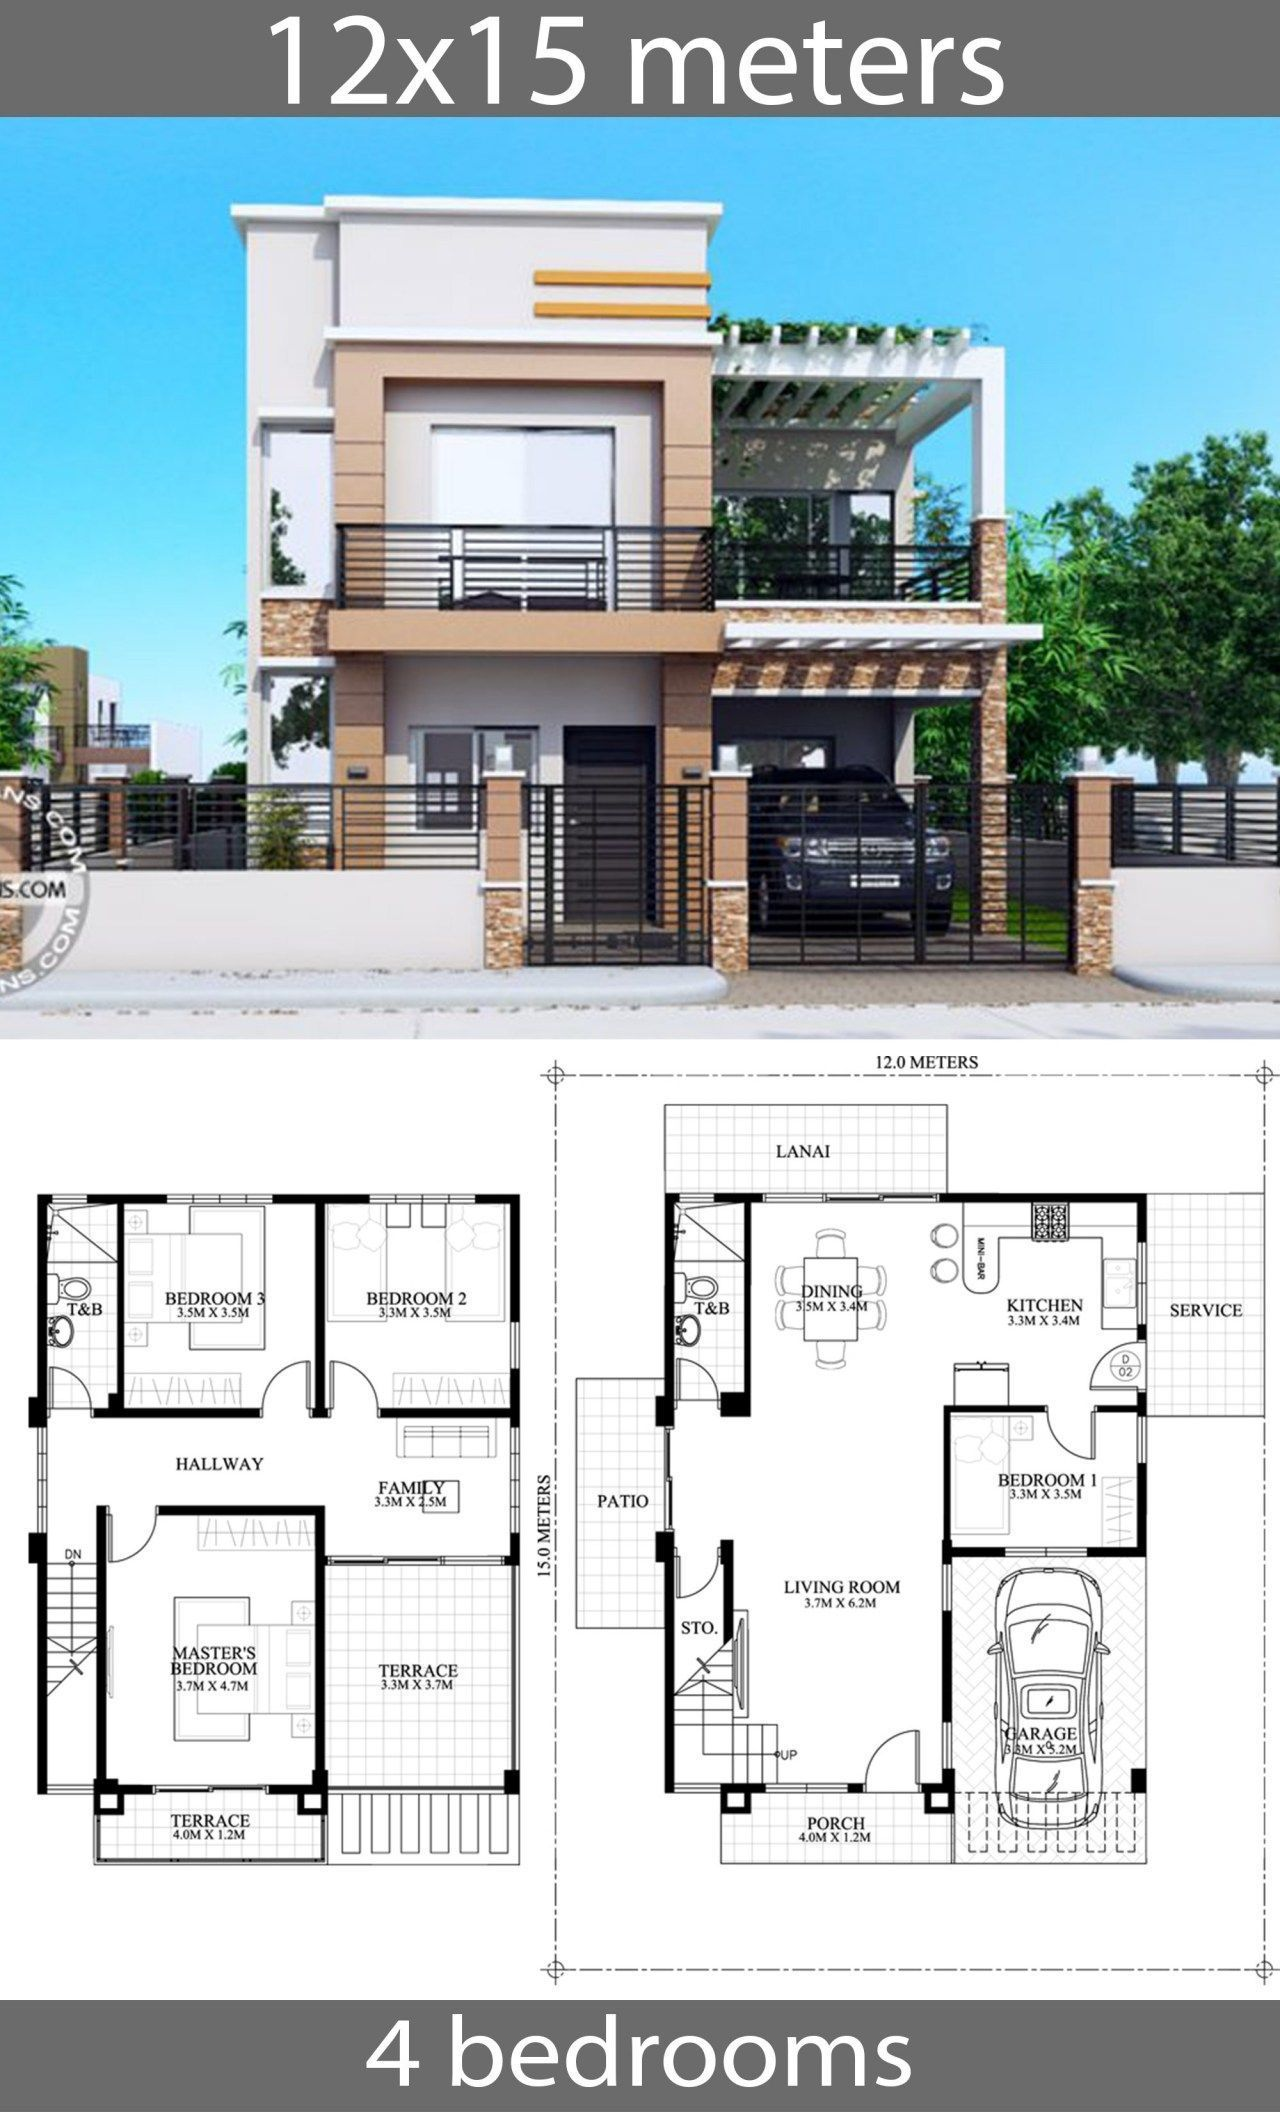 12x15m Bedrooms Home House Ideas Plans In 2020 Model House Plan House Construction Plan Dream House Plans